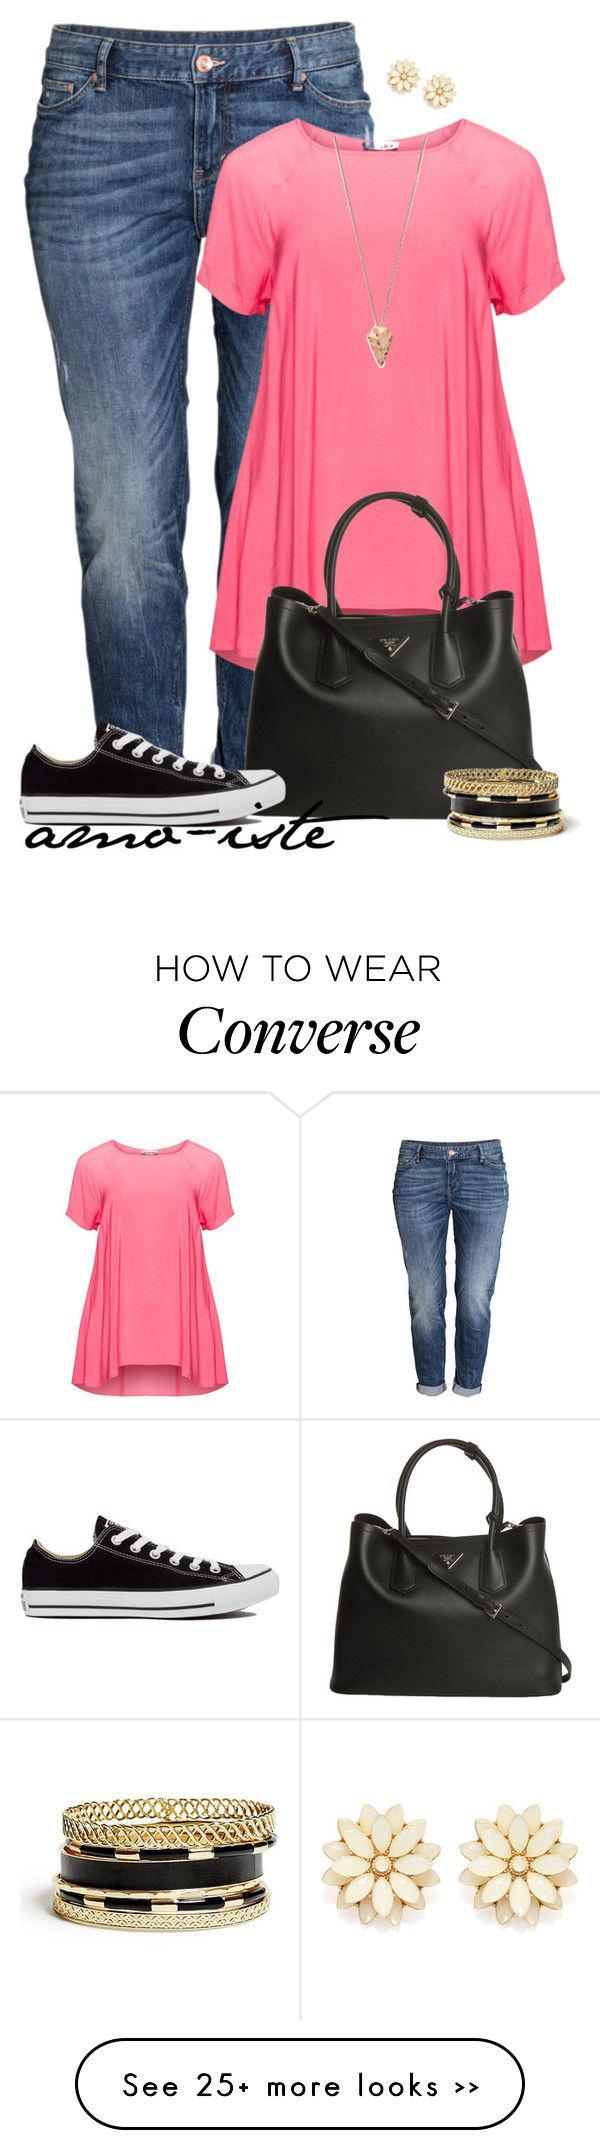 Everyday - Plus Size by amo-iste on Polyvore featuring HM, Maxima, Prada, Converse, Pamela Love, GUESS and Forever 21